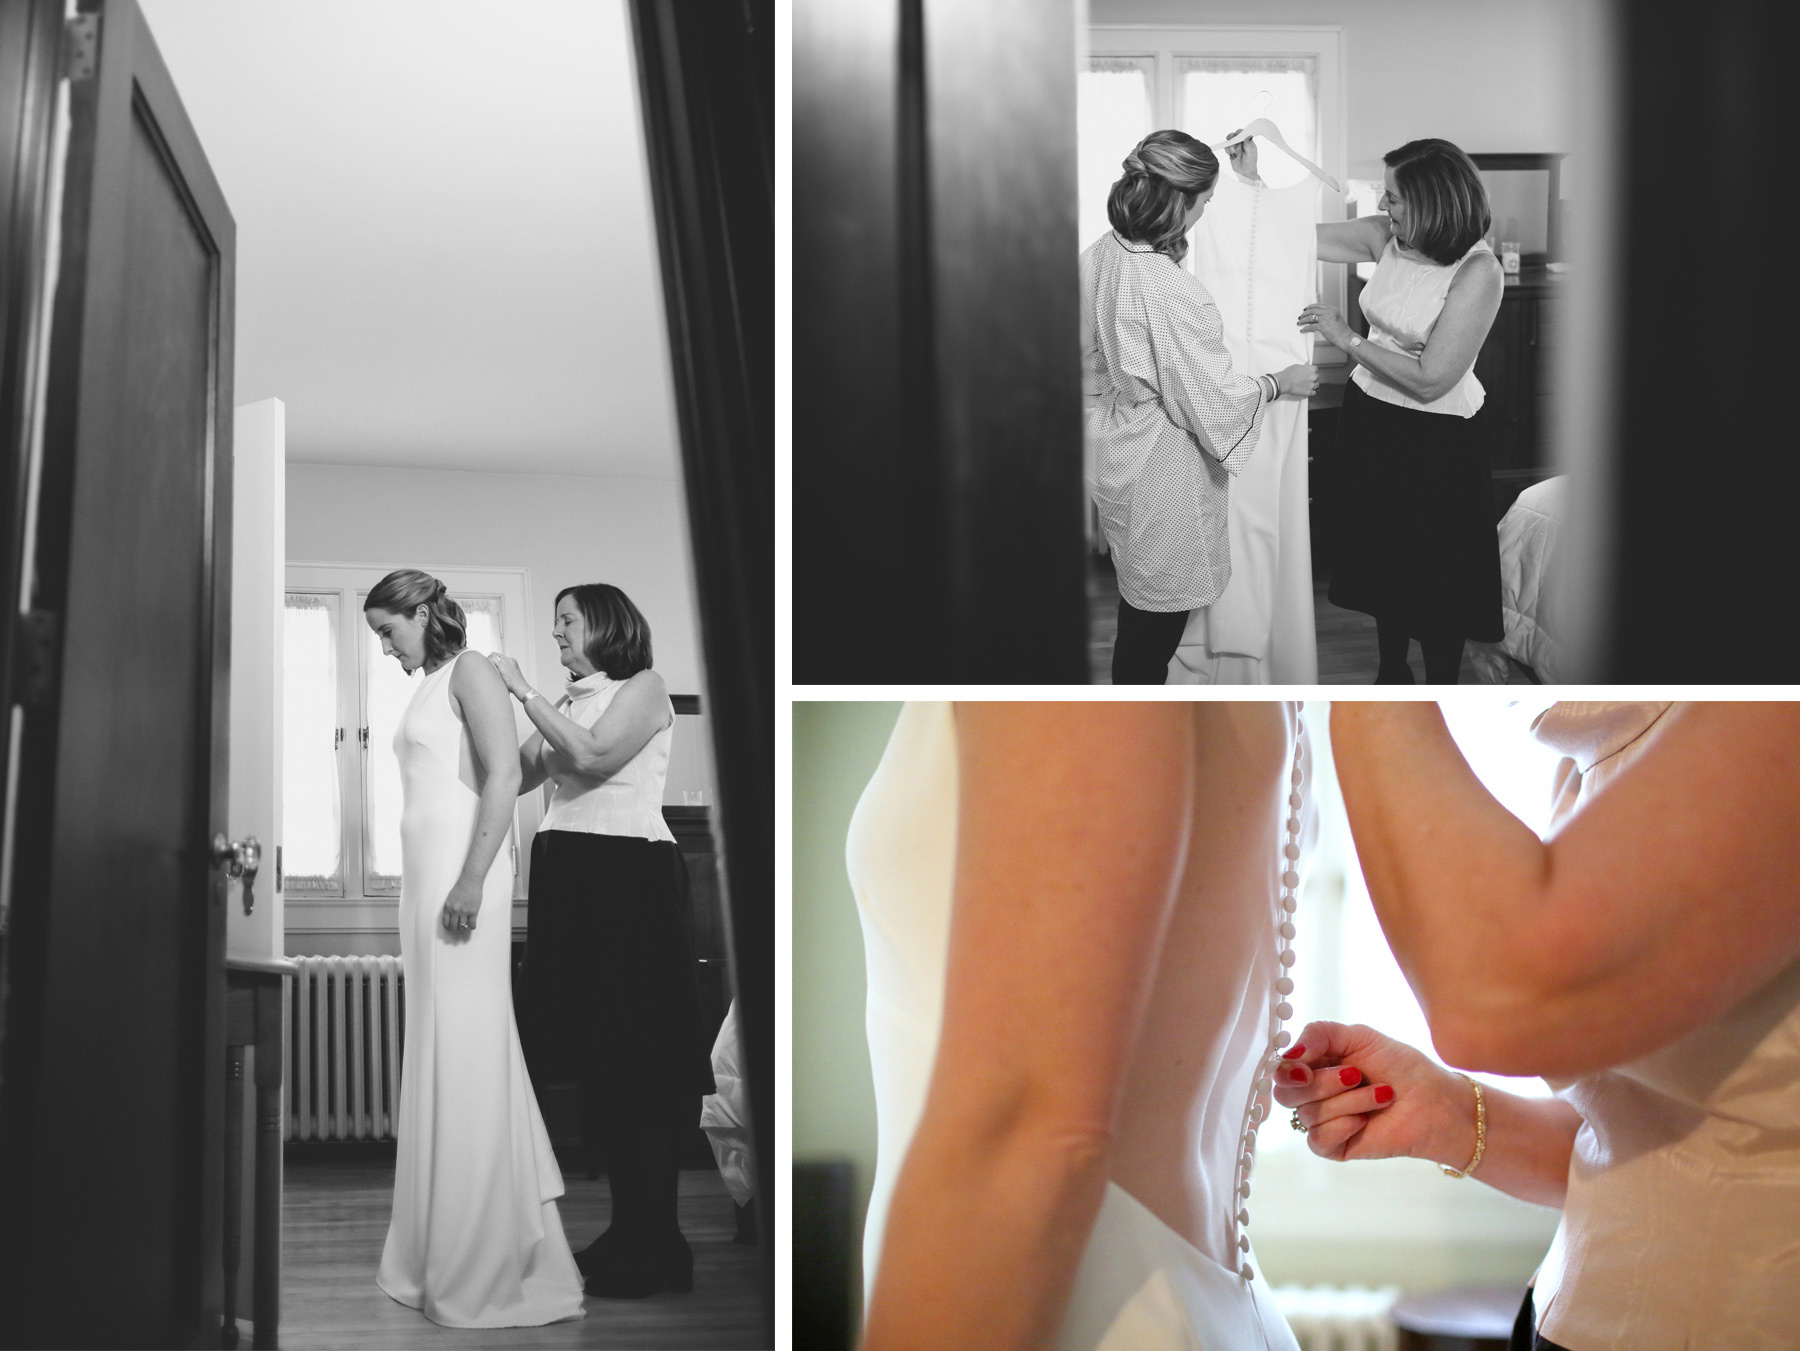 02-Saint-Paul-Minnesota-Wedding-Photographer-by-Andrew-Vick-Photography-Fall-Autumn-Parents-House-Getting-Ready-Bride-Mother-Dress-Black-and-White-Kathryn-and-Sam.jpg